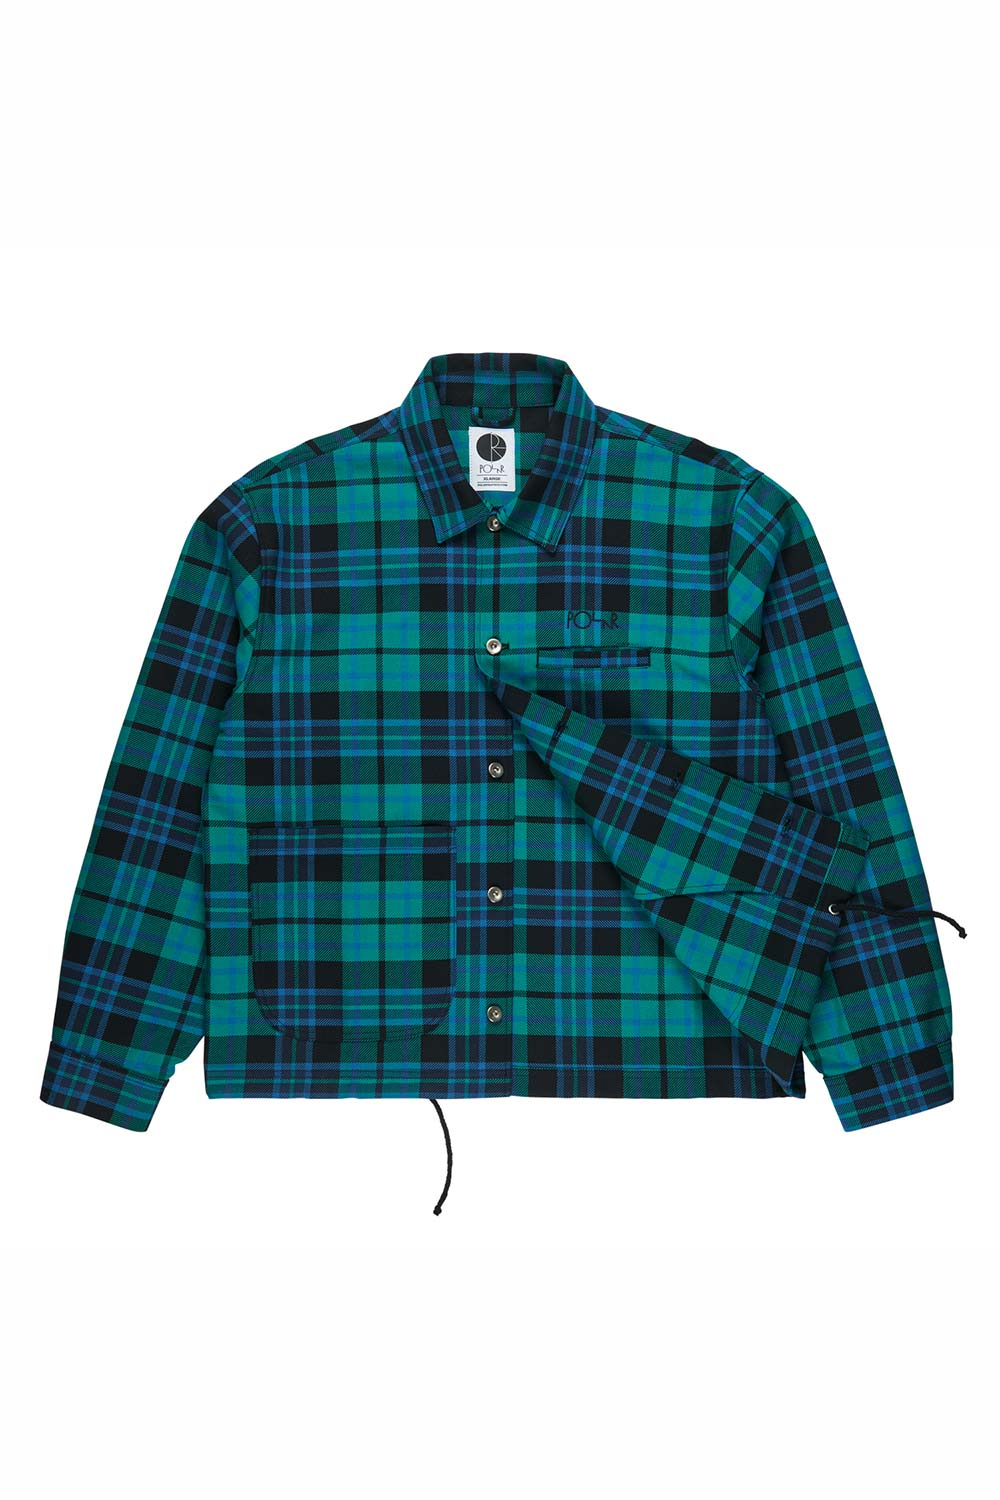 PLAID WORK JACKET